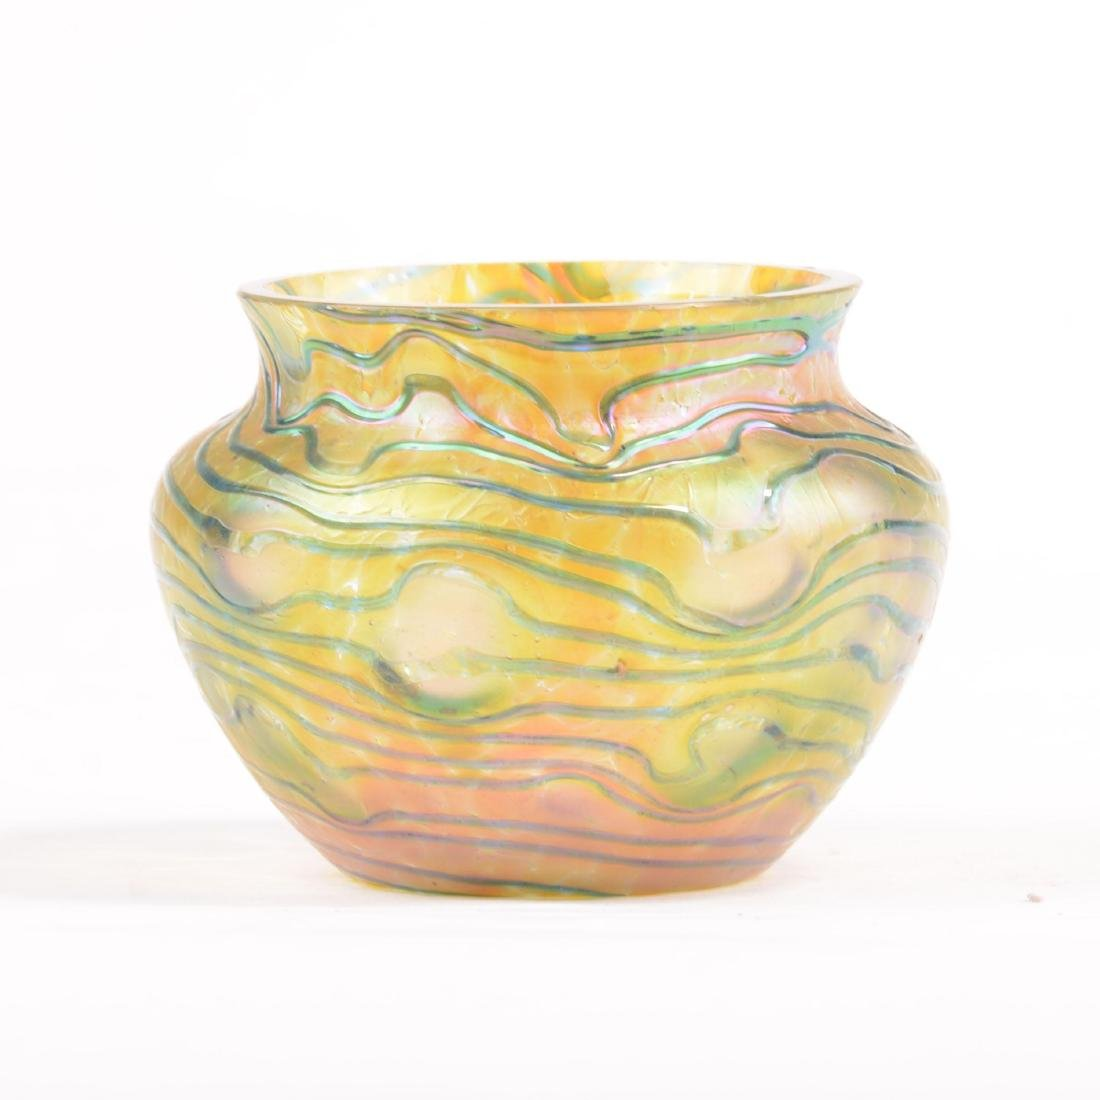 "Vase - Art Glass - 2.5"" X 3.5"""